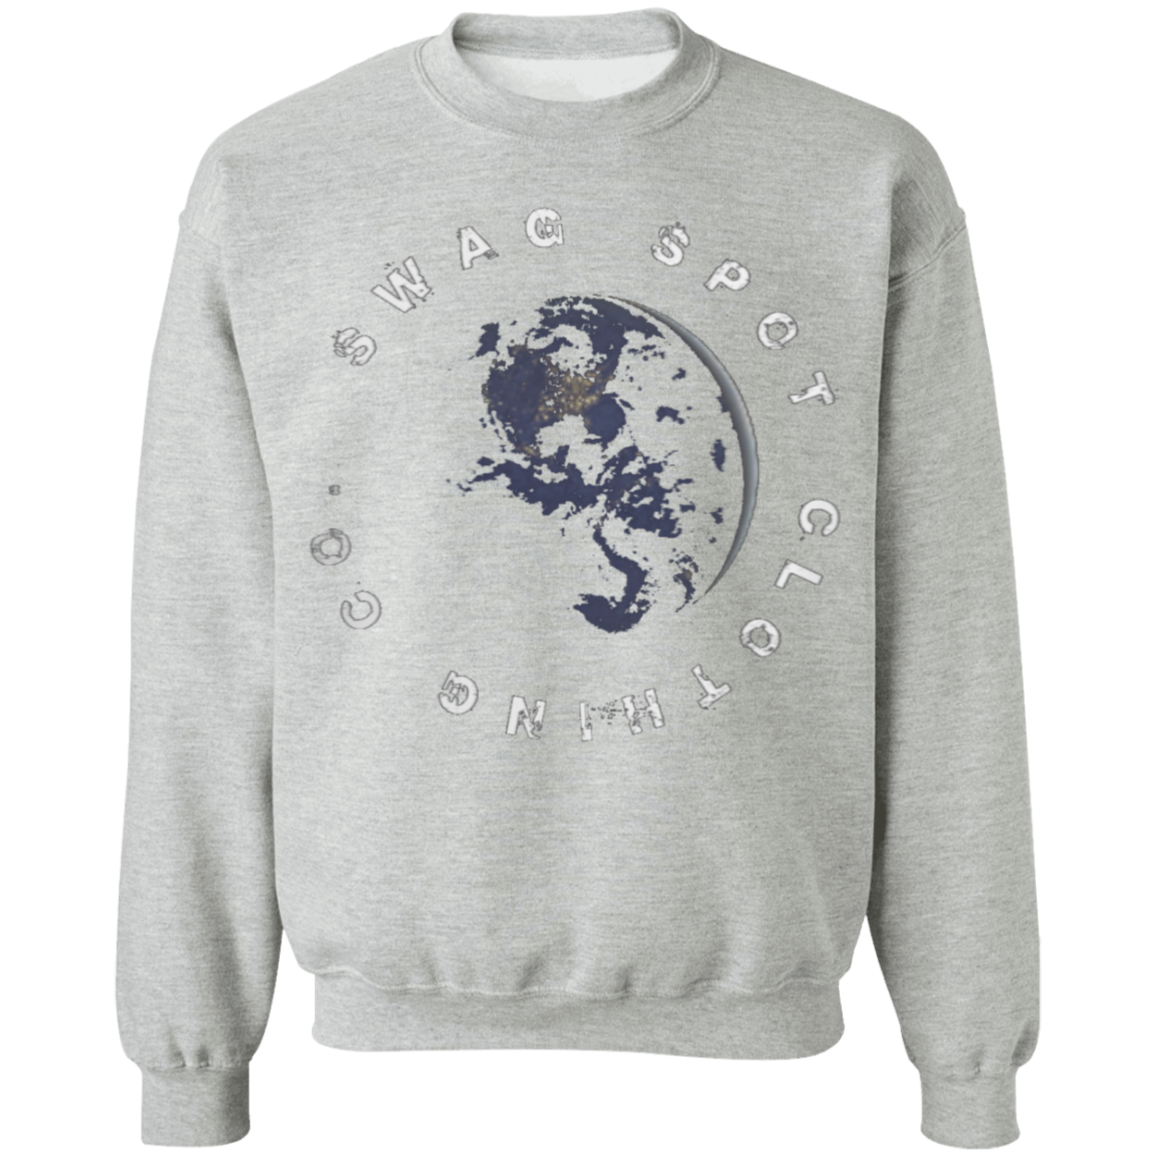 Swag World Unisex Sweatshirt - SW@gSpot